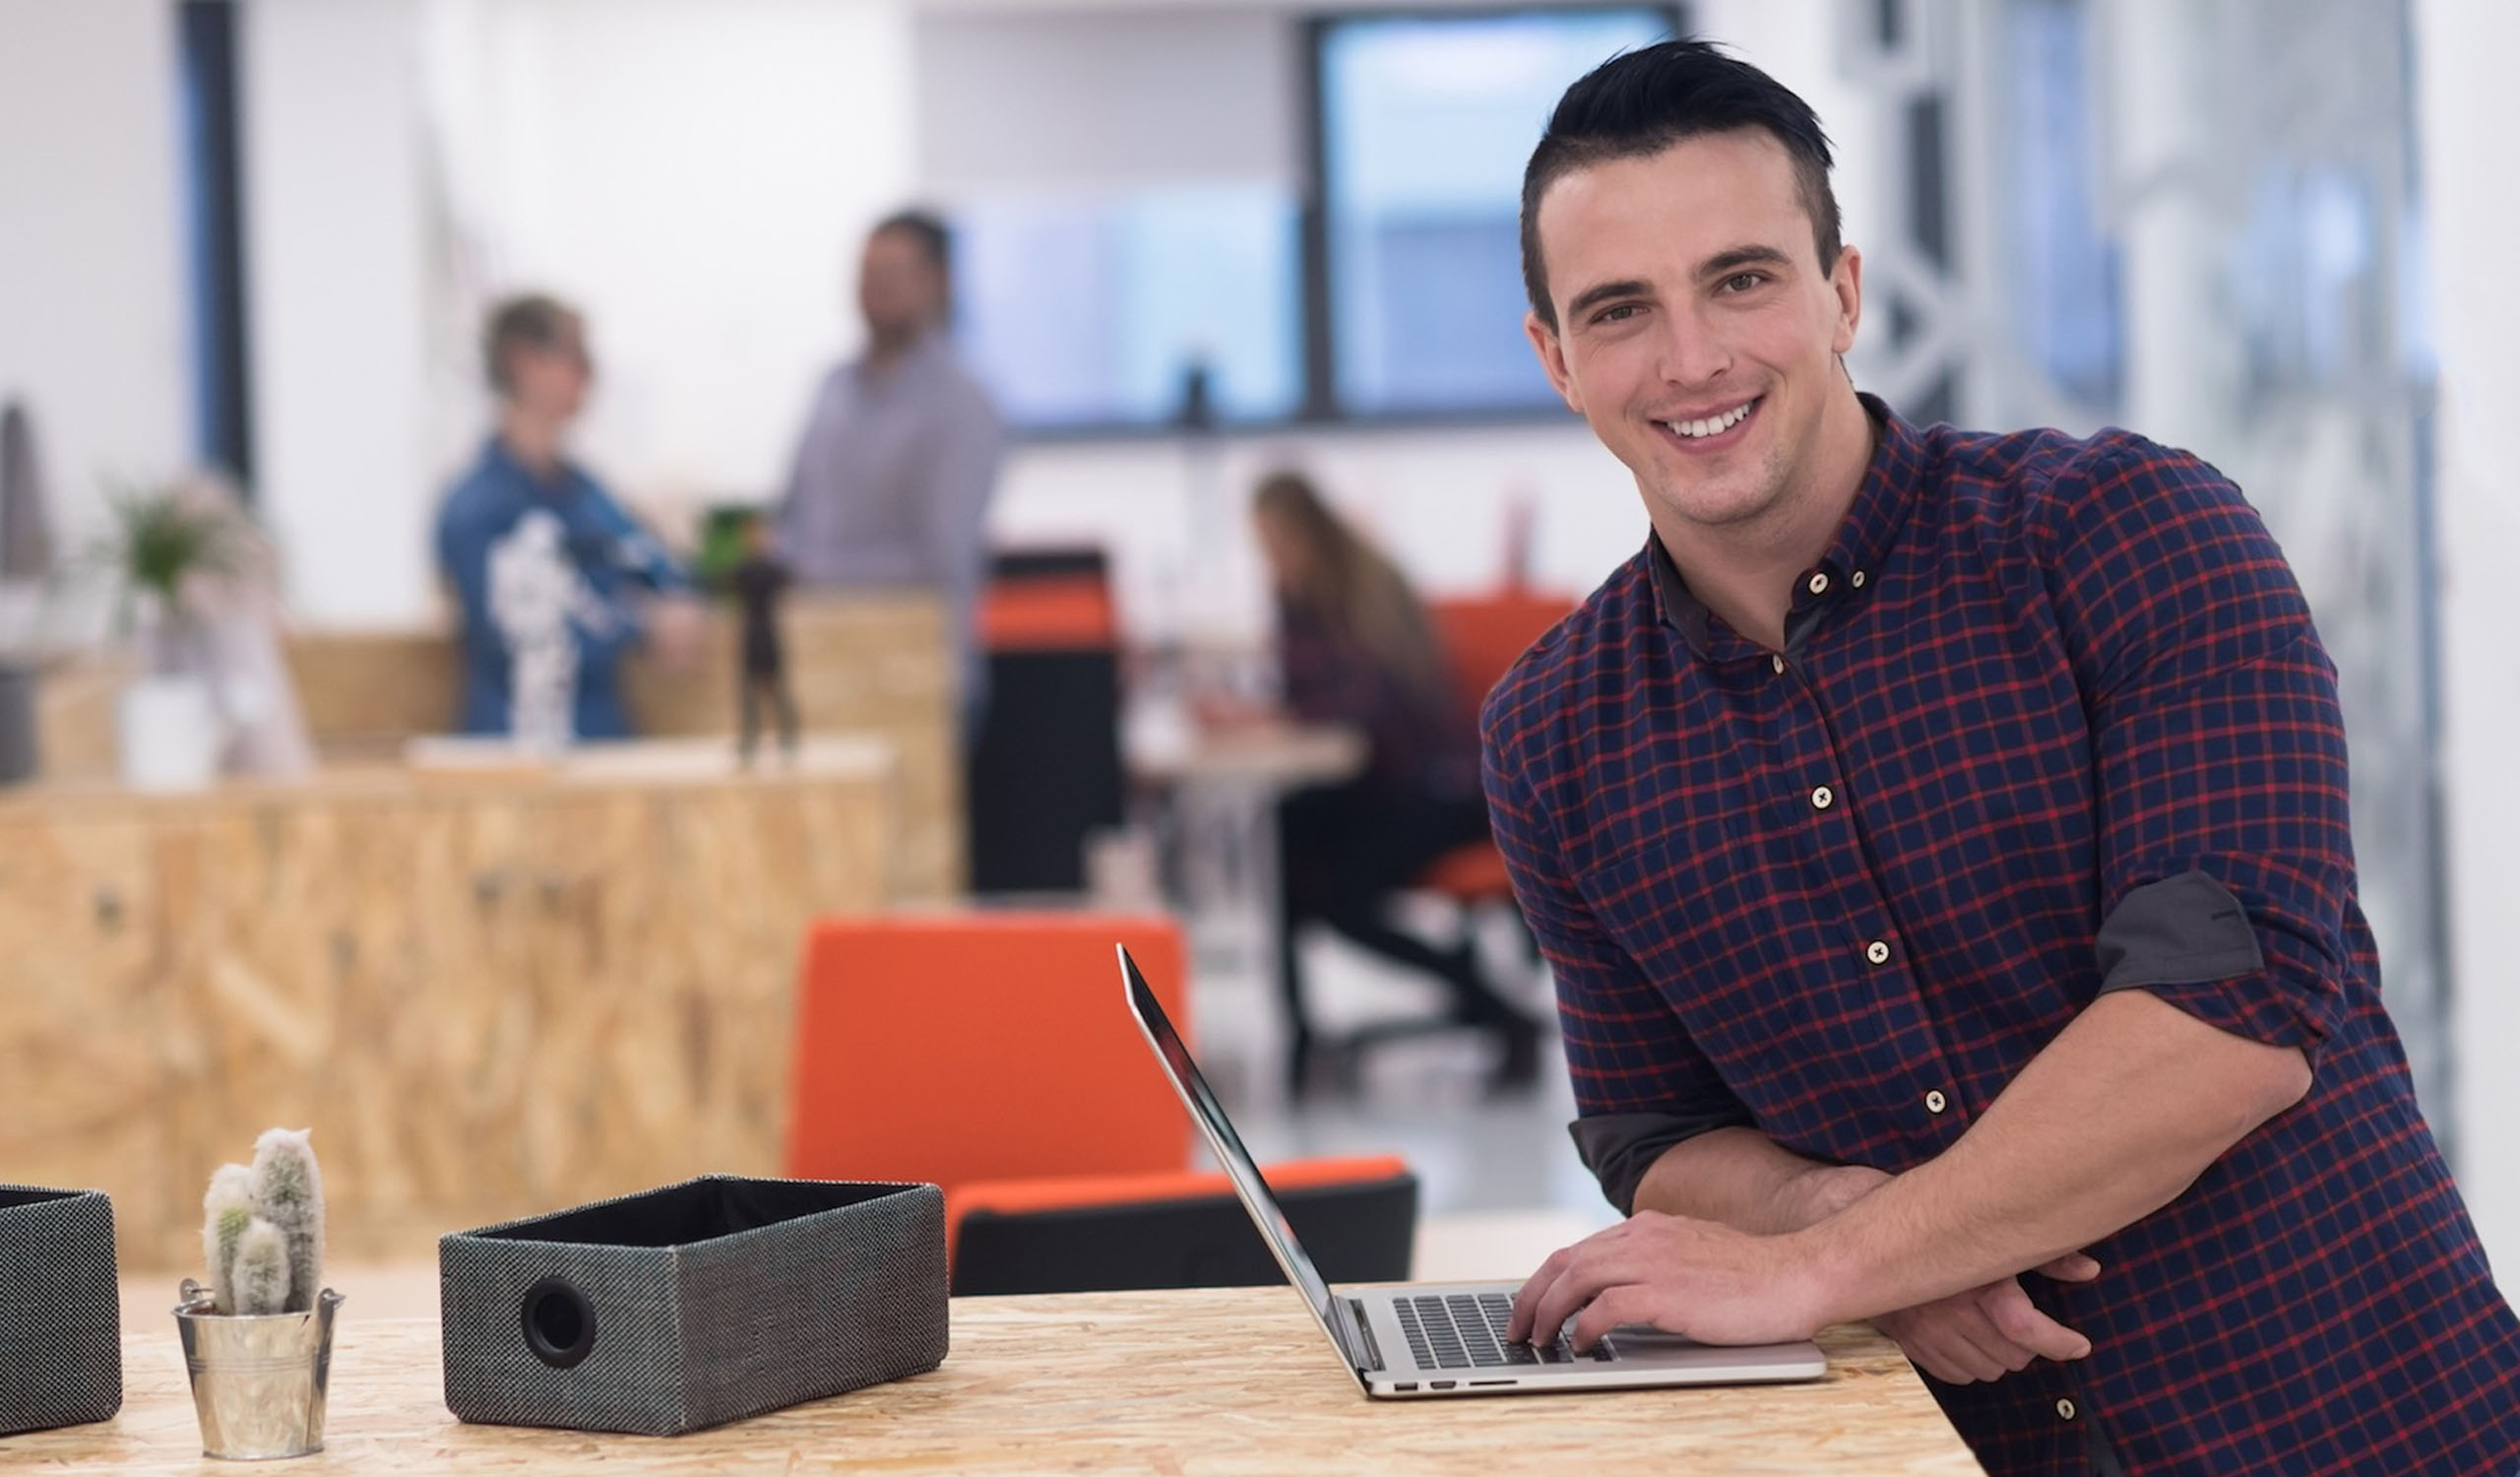 Man smiling while using his laptop at the office